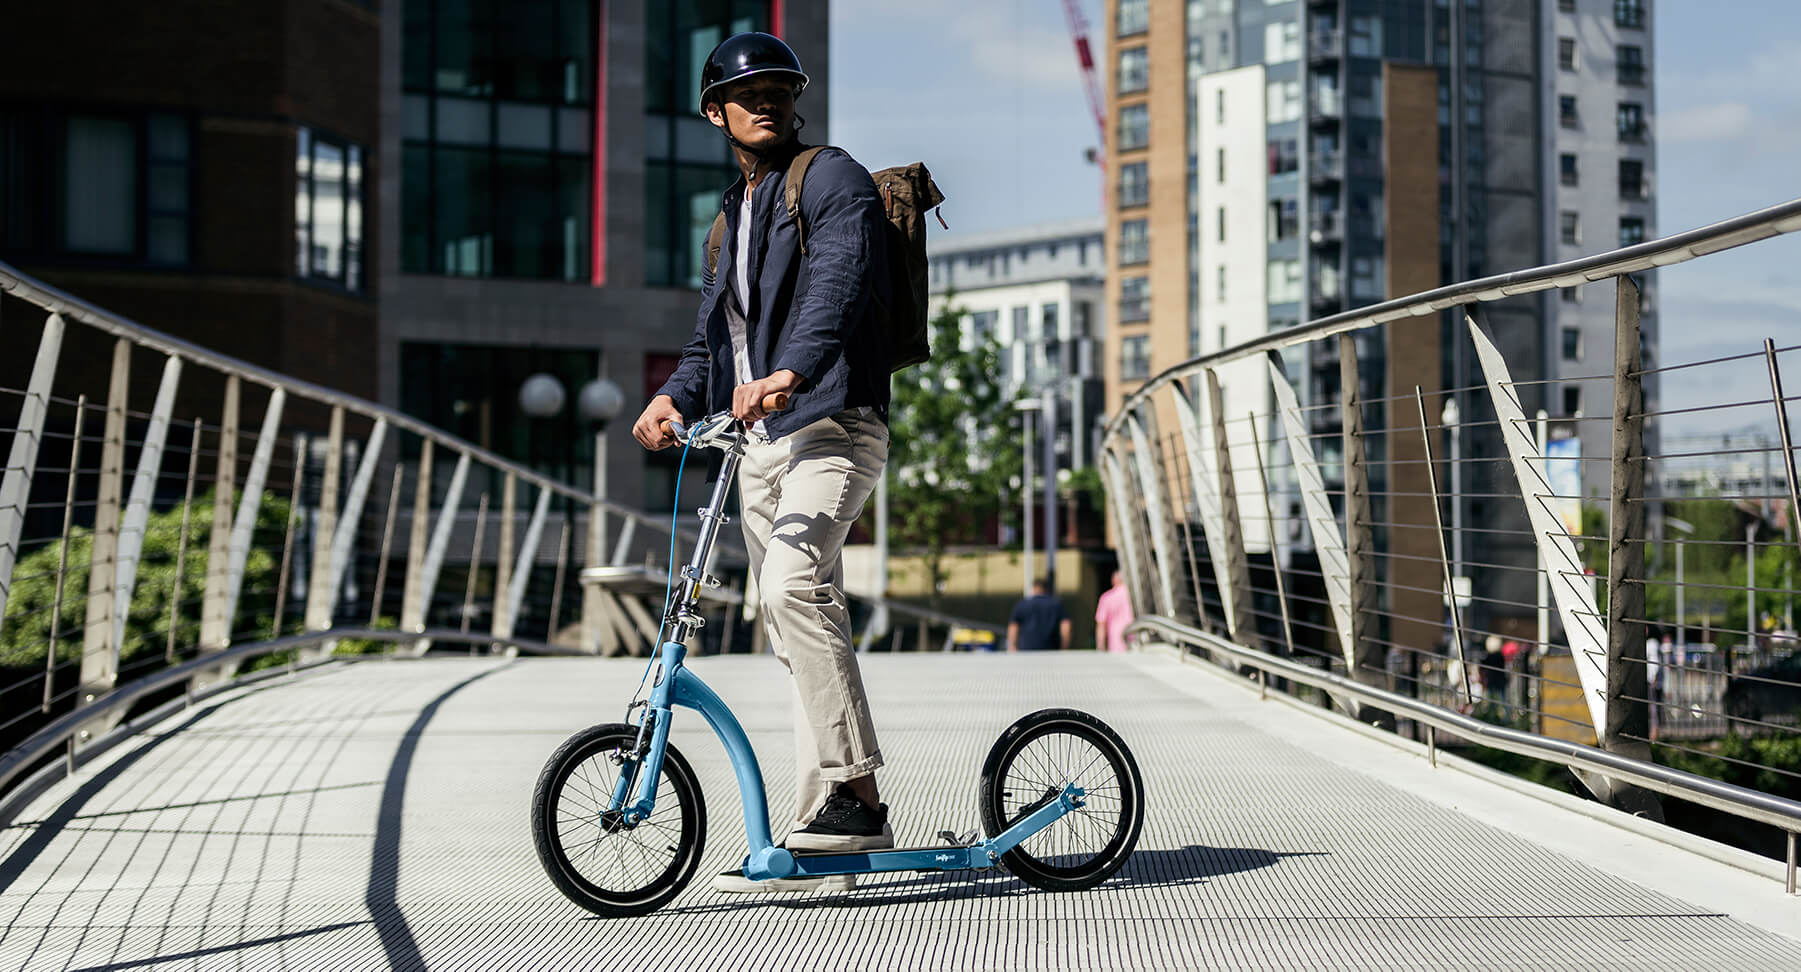 folding adult scooter, large wheel scooter, kick scooter commute